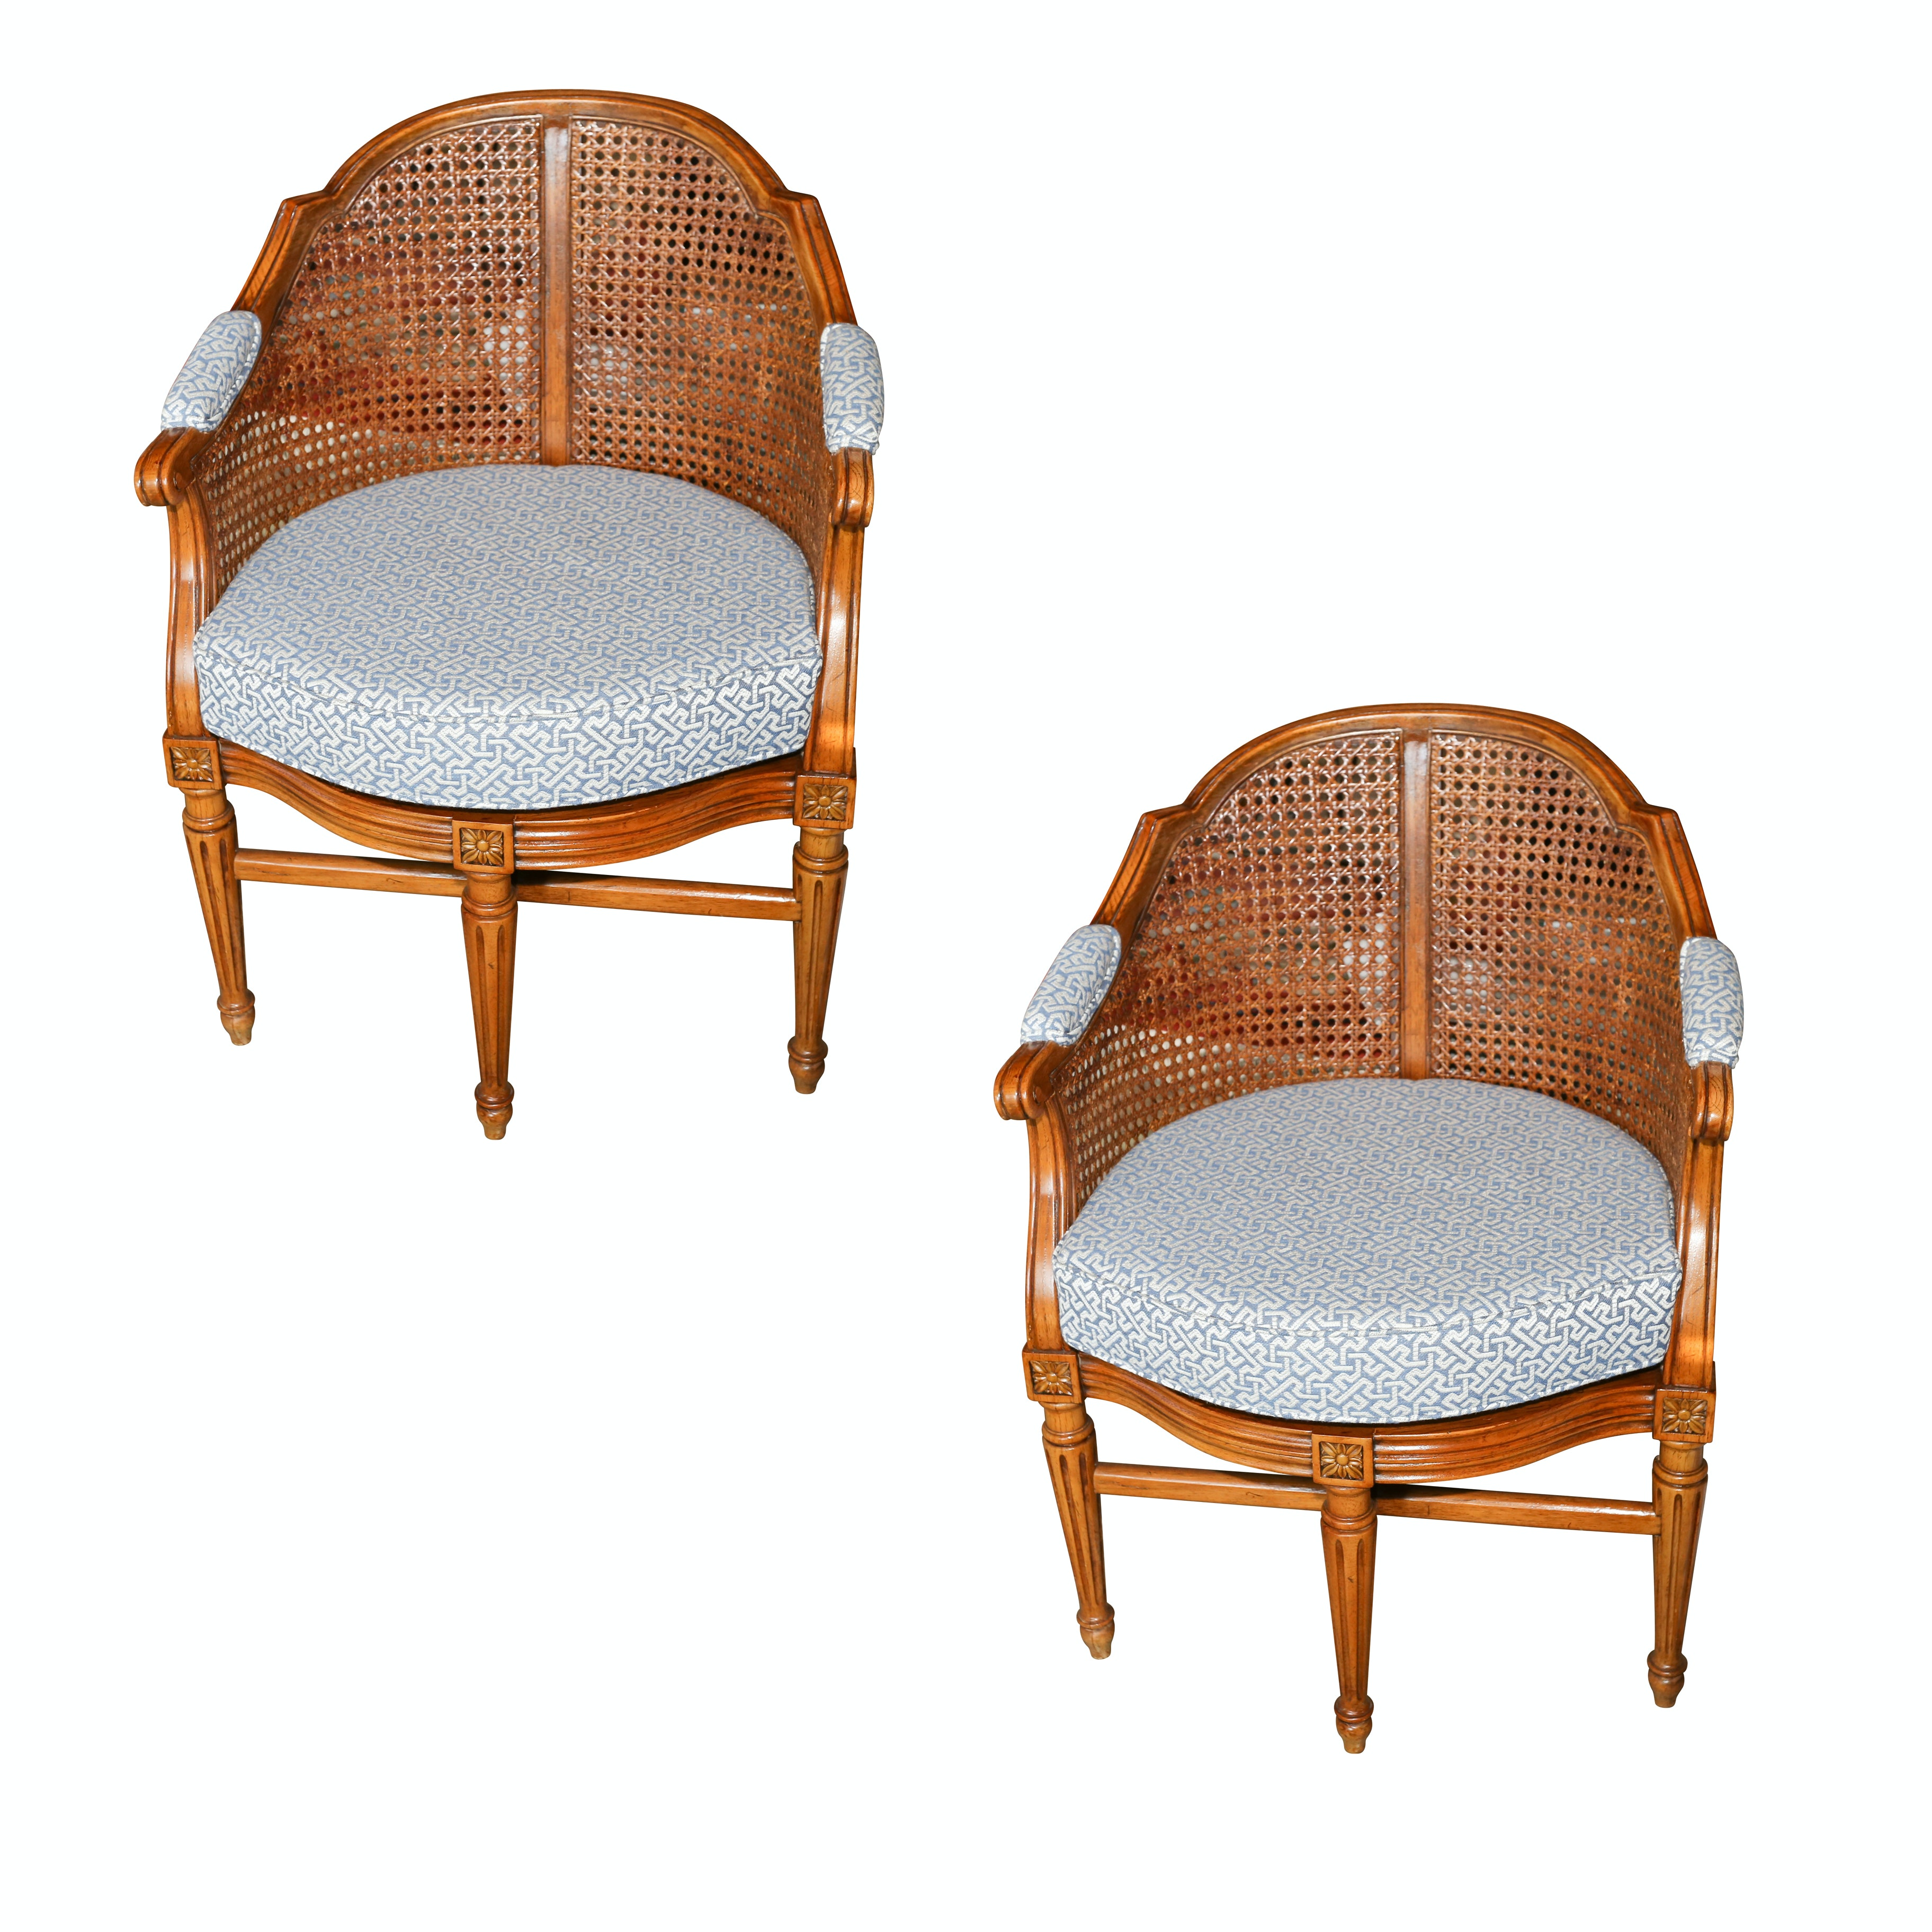 Louis XVI Style Caned Tub Chairs, 20th Century